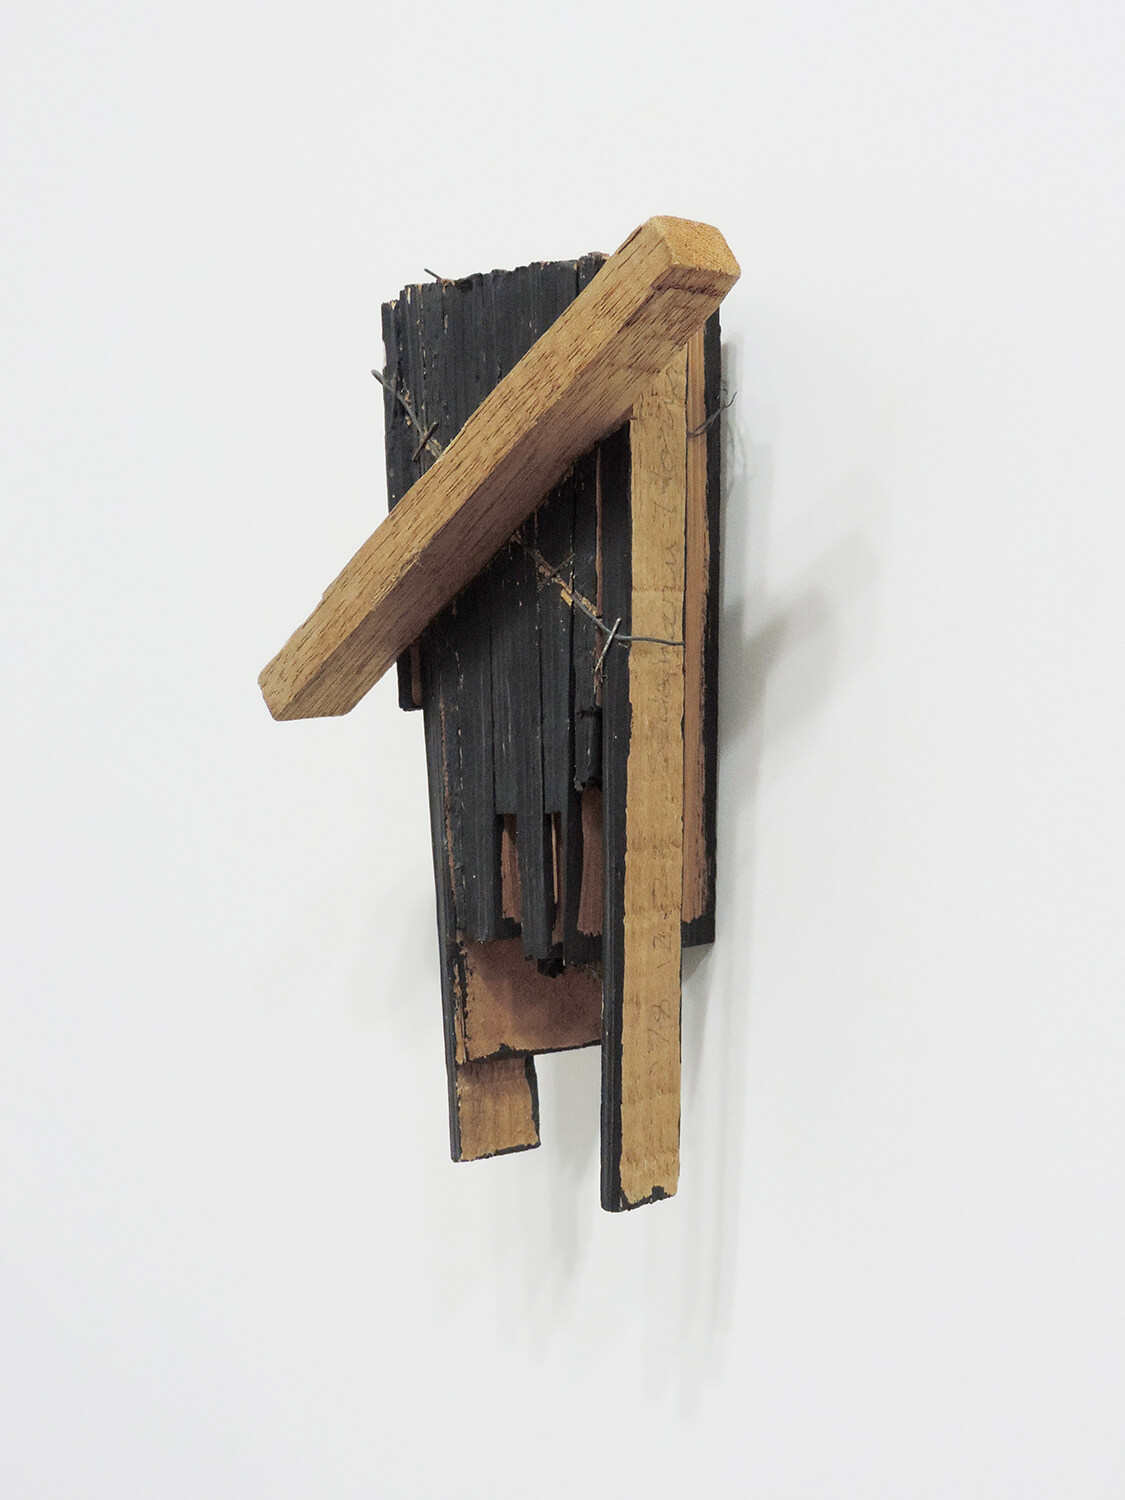 <b>Untitled</b><br>paint, wood, wire and staple 21 x 16.5 x 7.5 cm 1978